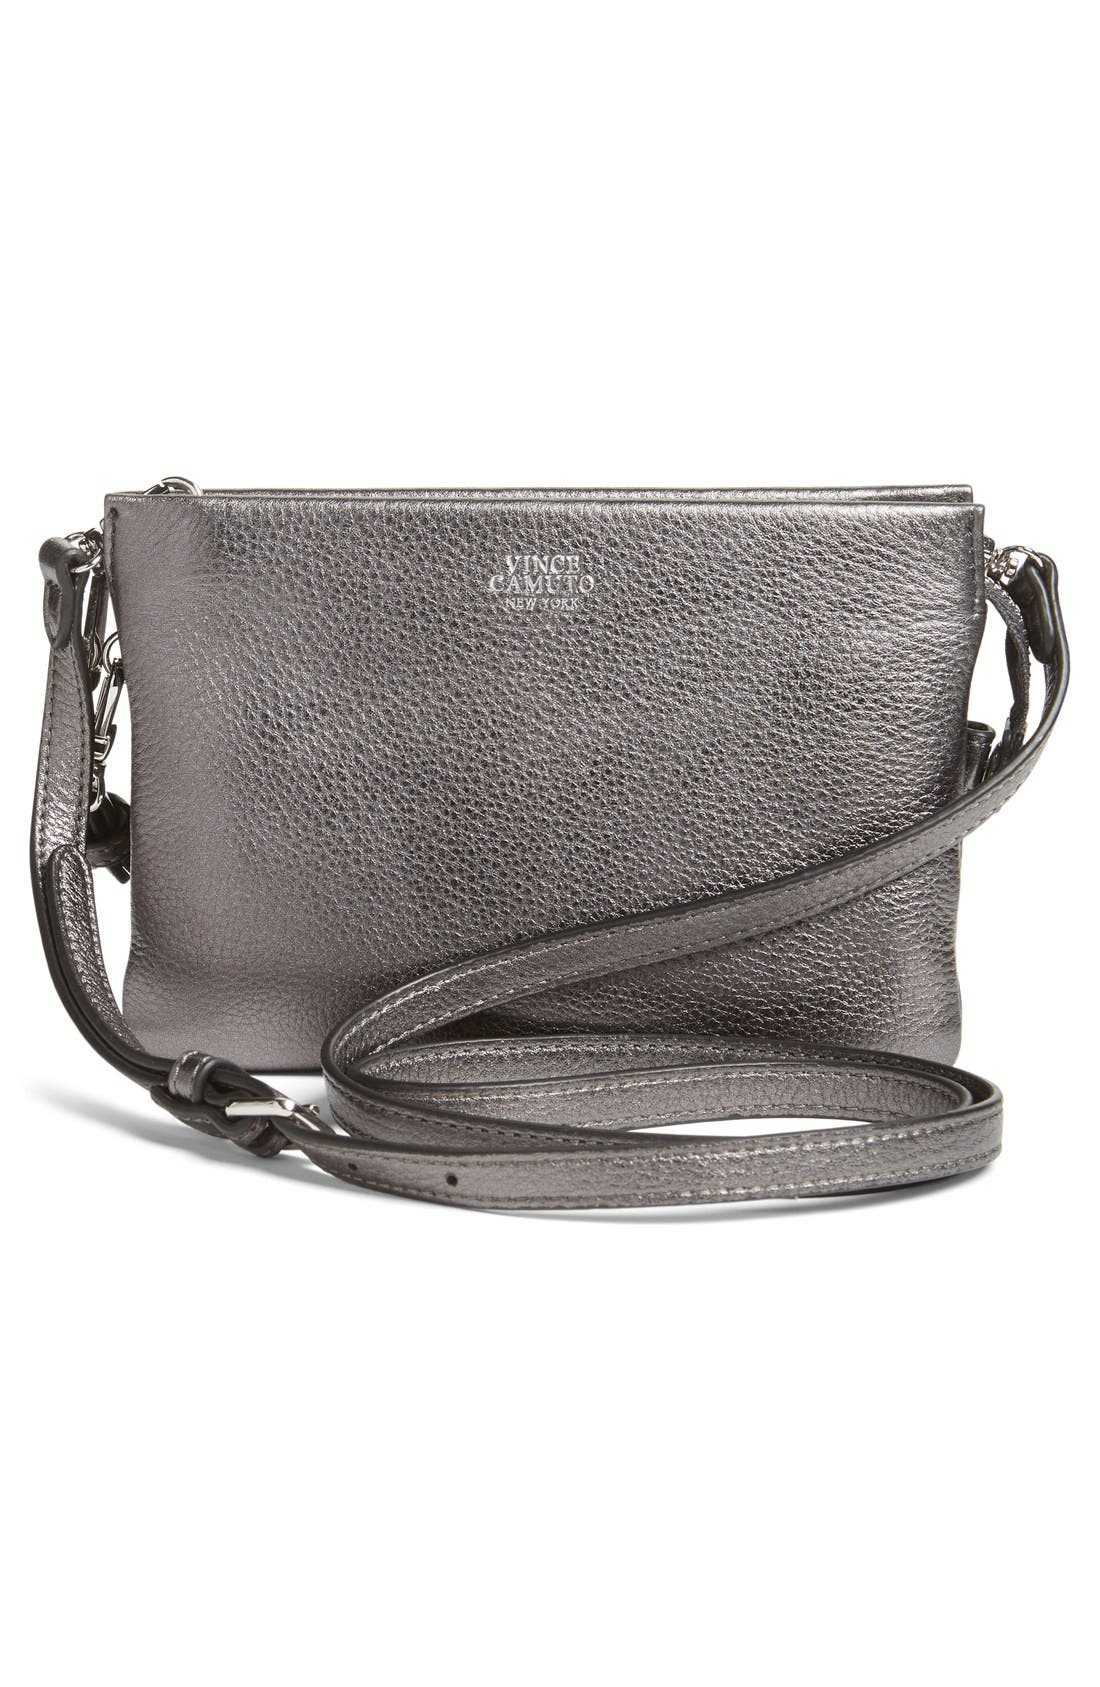 'Cami' Leather Crossbody Bag,                             Alternate thumbnail 105, color,